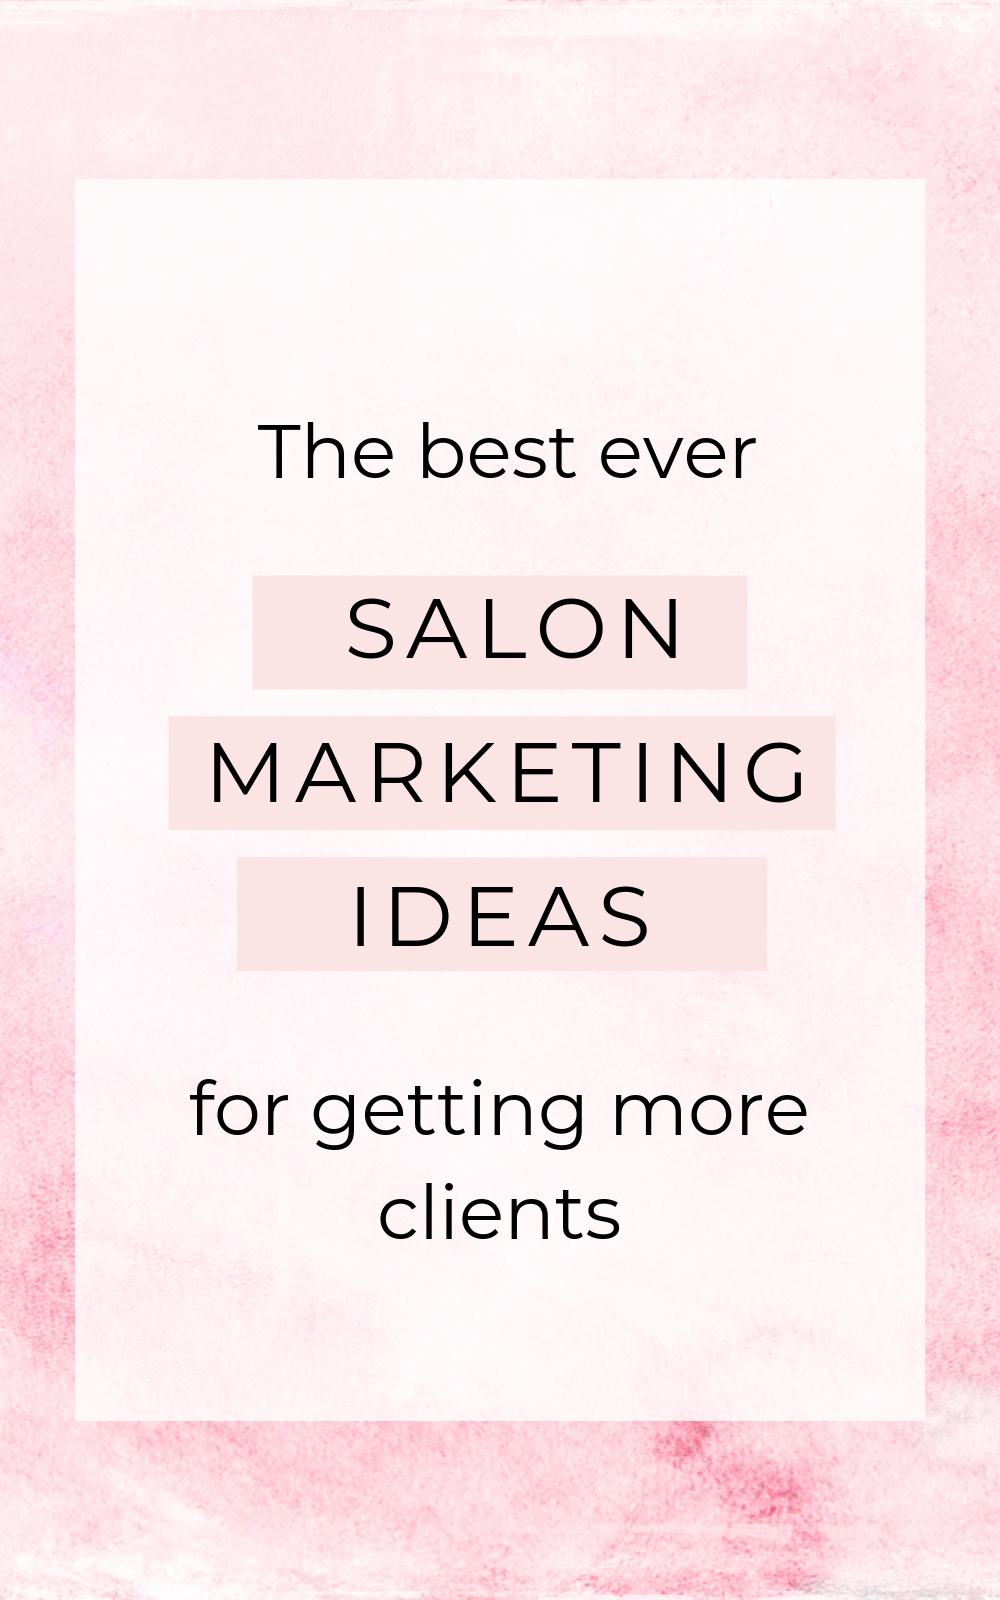 The 19 salon marketing ideas you need to get right to attract new